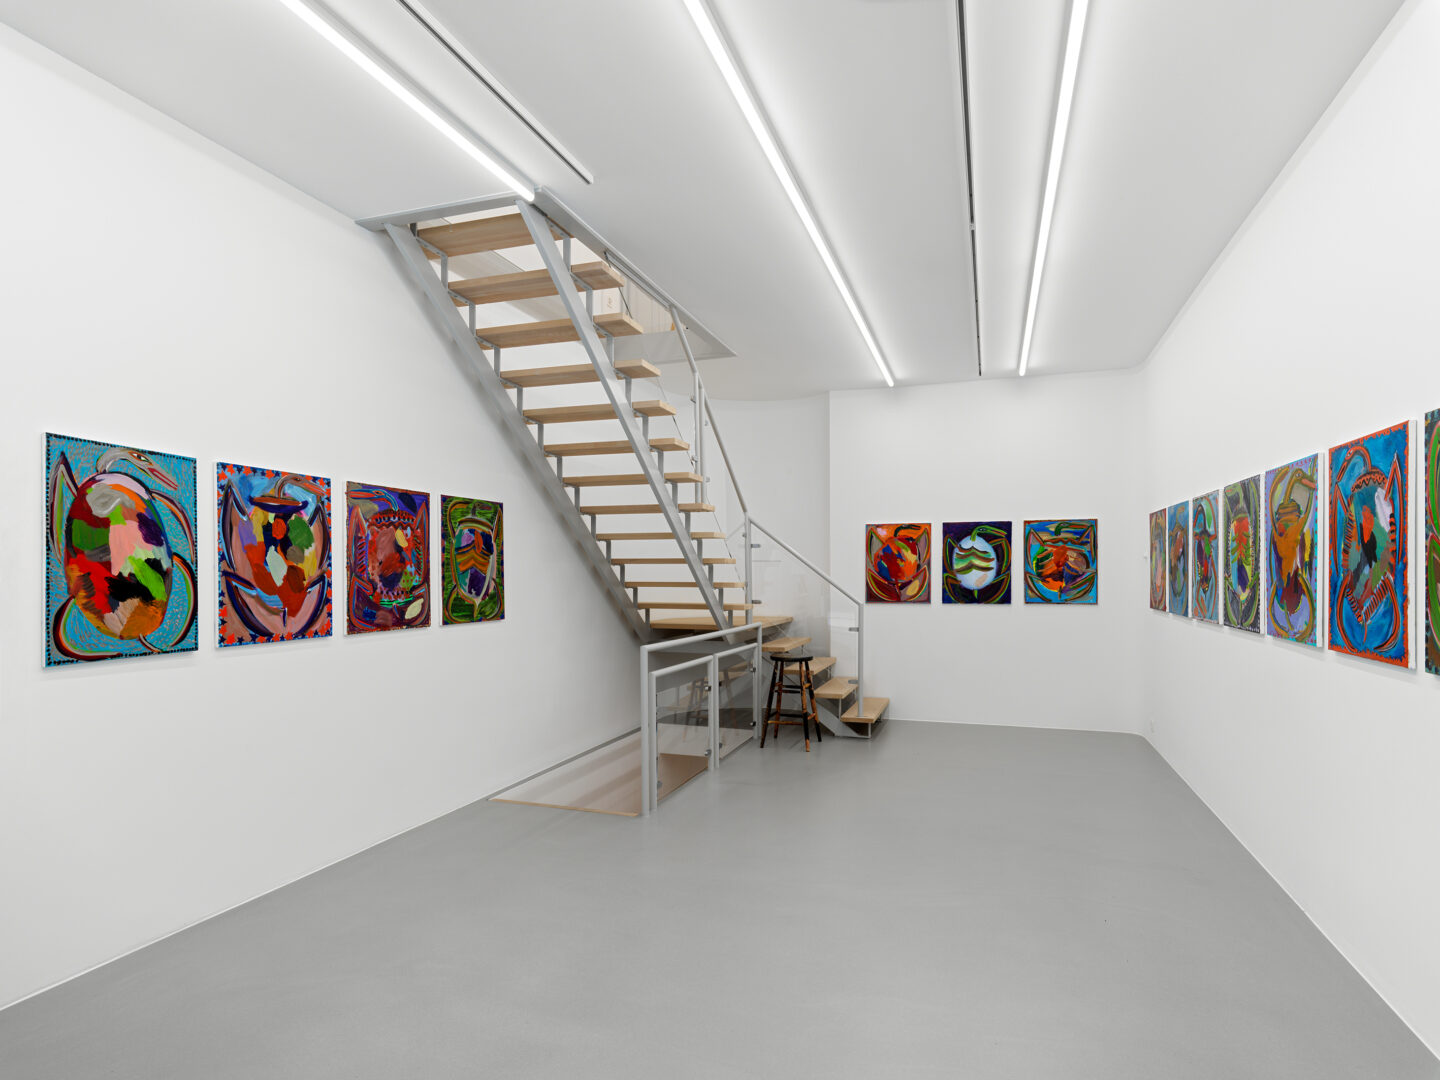 Exhibition View Josh Smith Soloshow «Life» at Galerie Eva Presenhuber, Rämistrasse, Zurich, 2020 / © Josh Smith / Photo: Stefan Altenburger / Courtesy: the artist and Galerie Eva Presenhuber, Zurich / New York